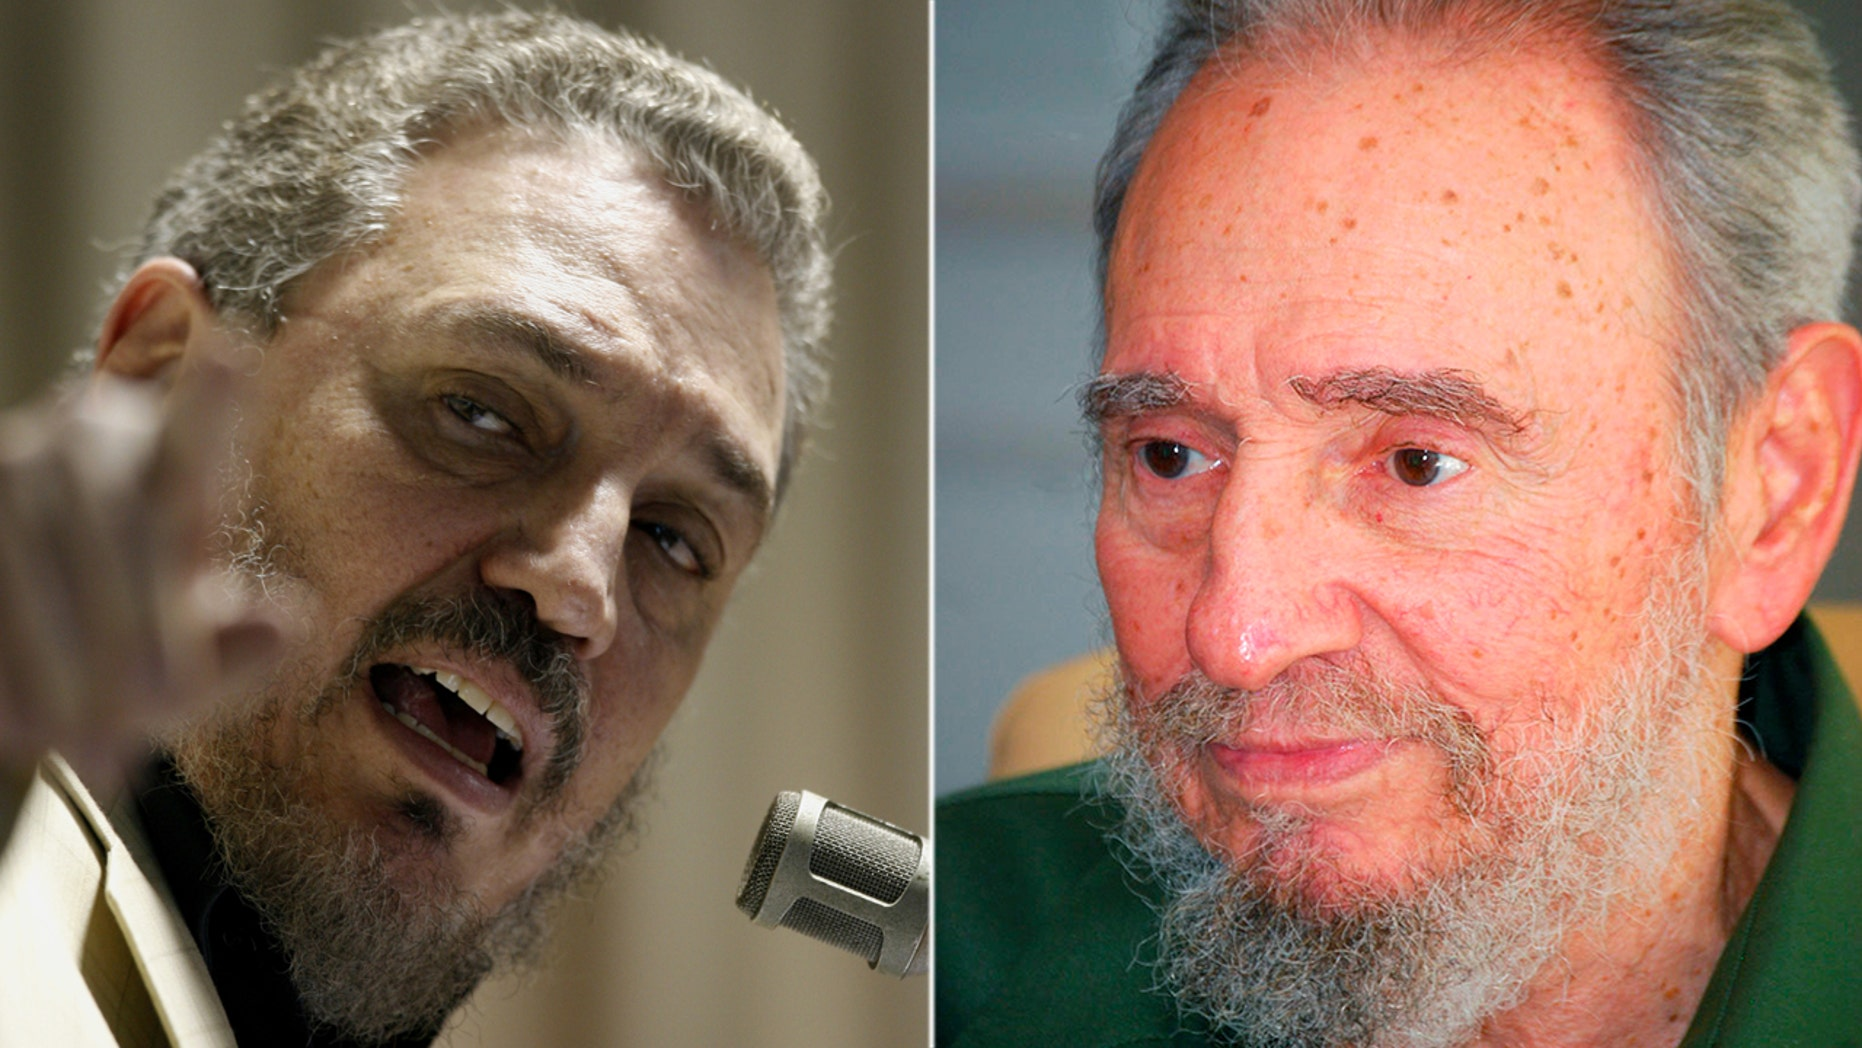 Fidel Castro Diaz-Balart, left, the oldest son of dictator Fidel Castro, killed himself, according to Cuban state media.